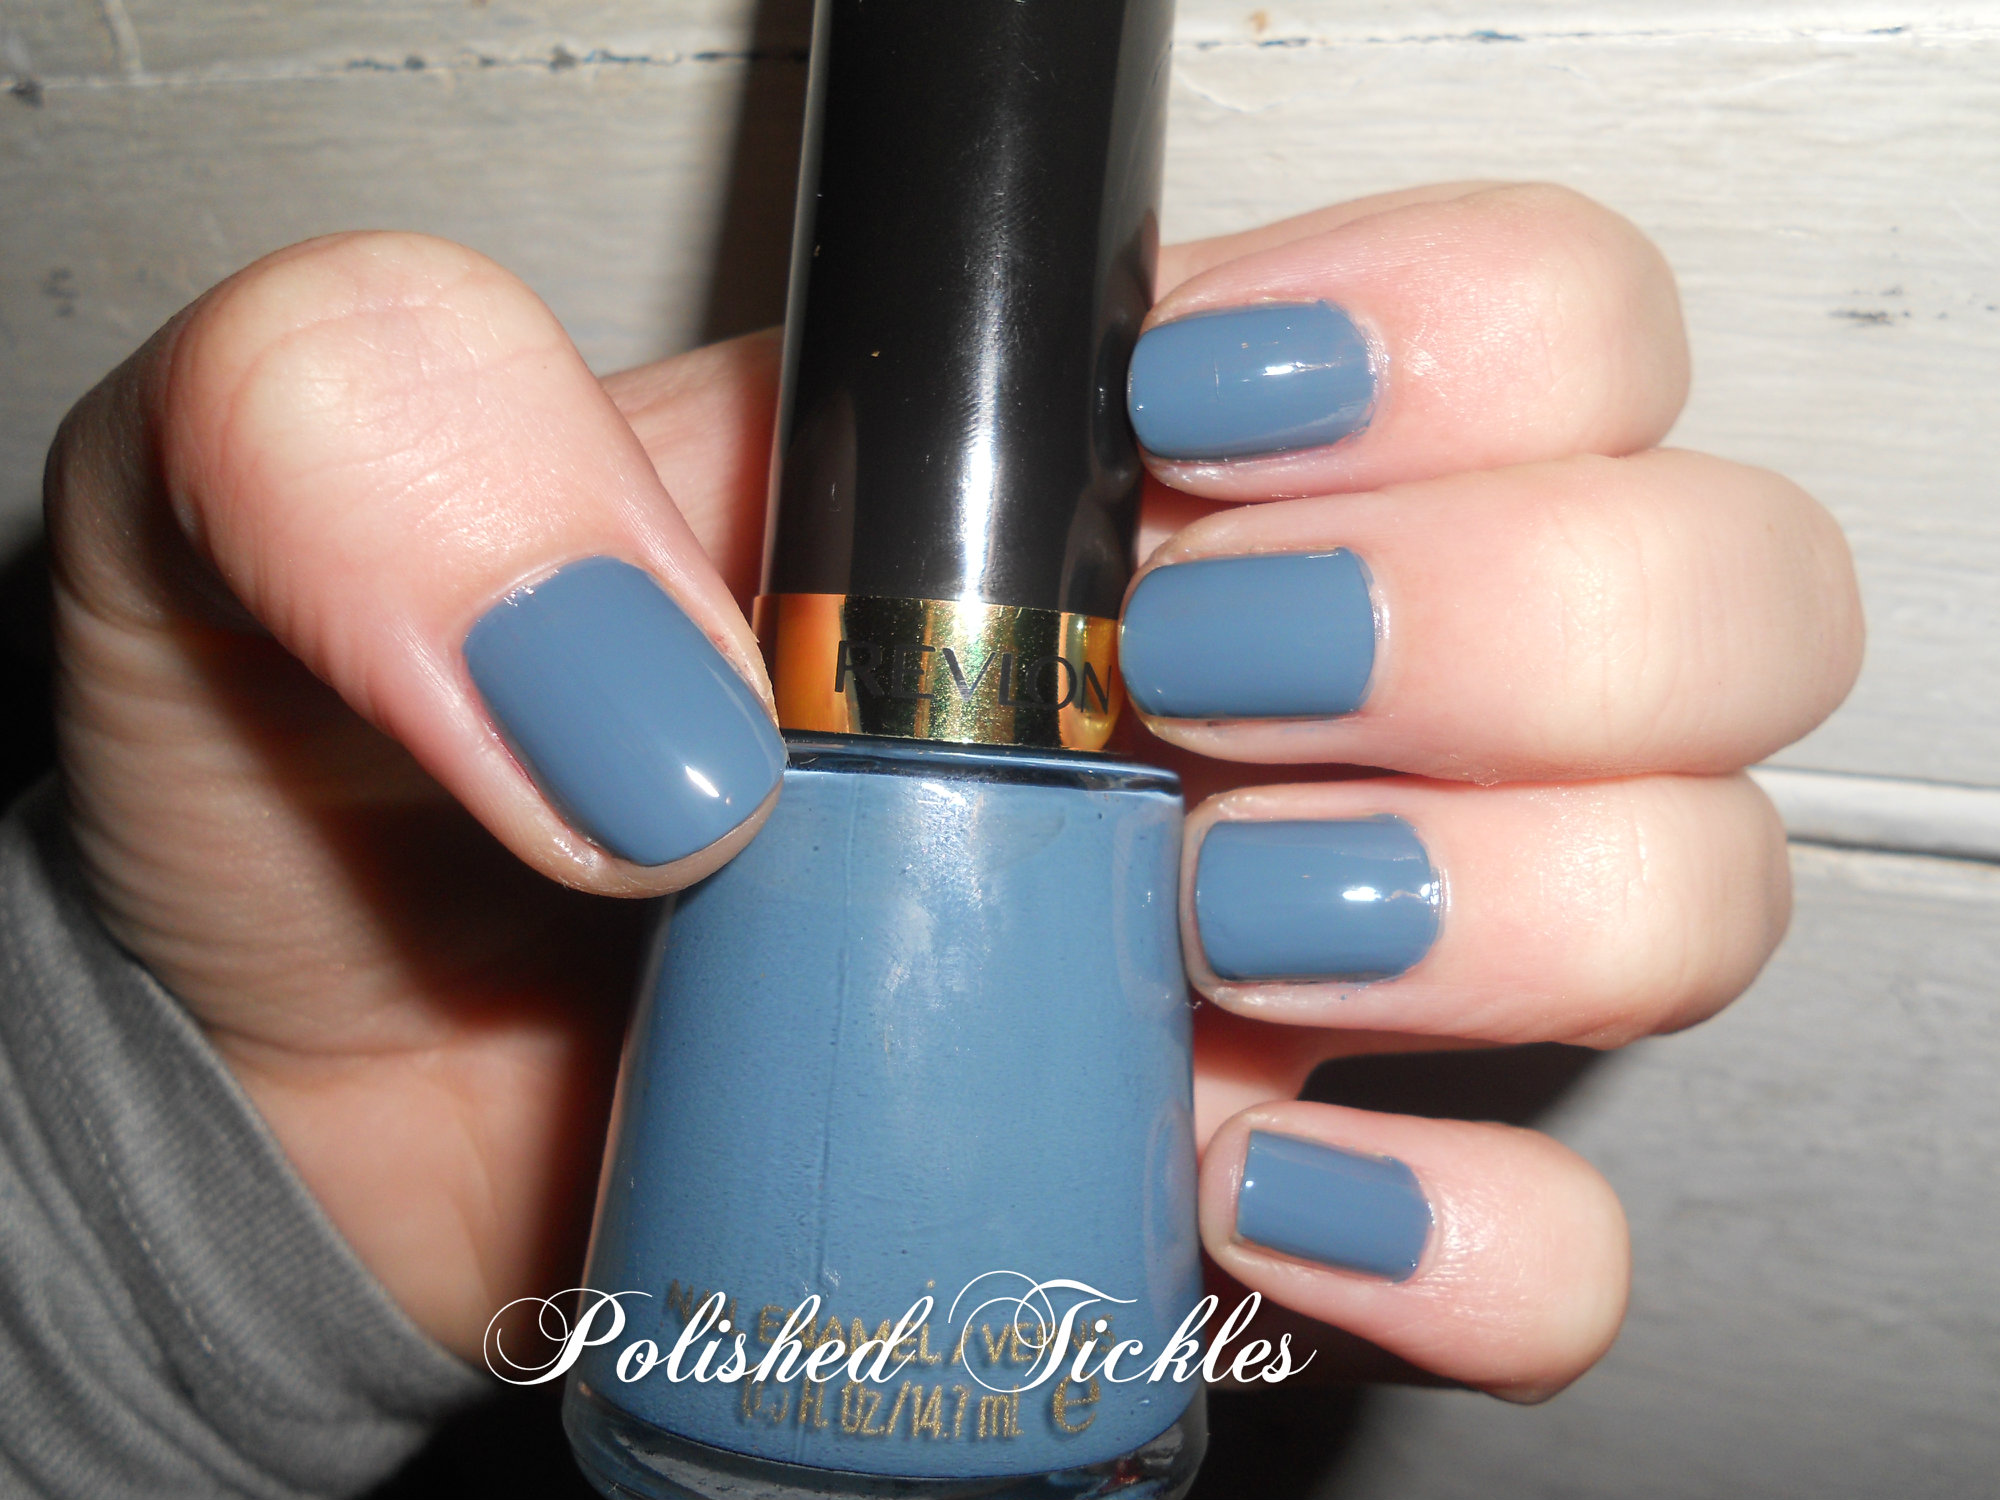 Revlon | Polished Tickles and Beauty | Page 2